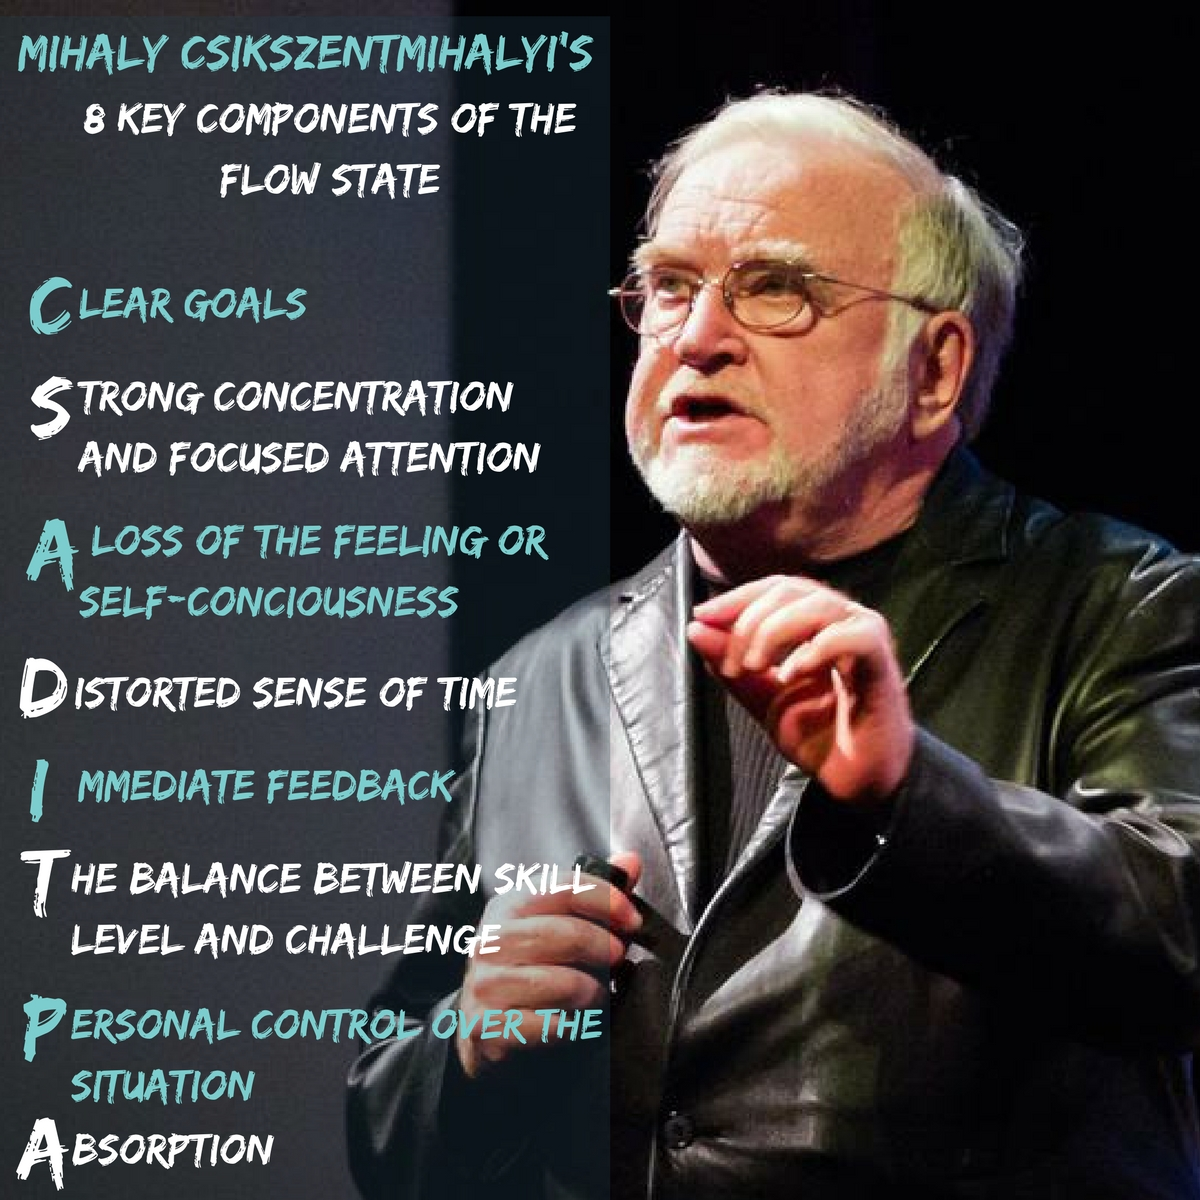 Mihaly Csikszentmihalyi 8 key components of the Flow State